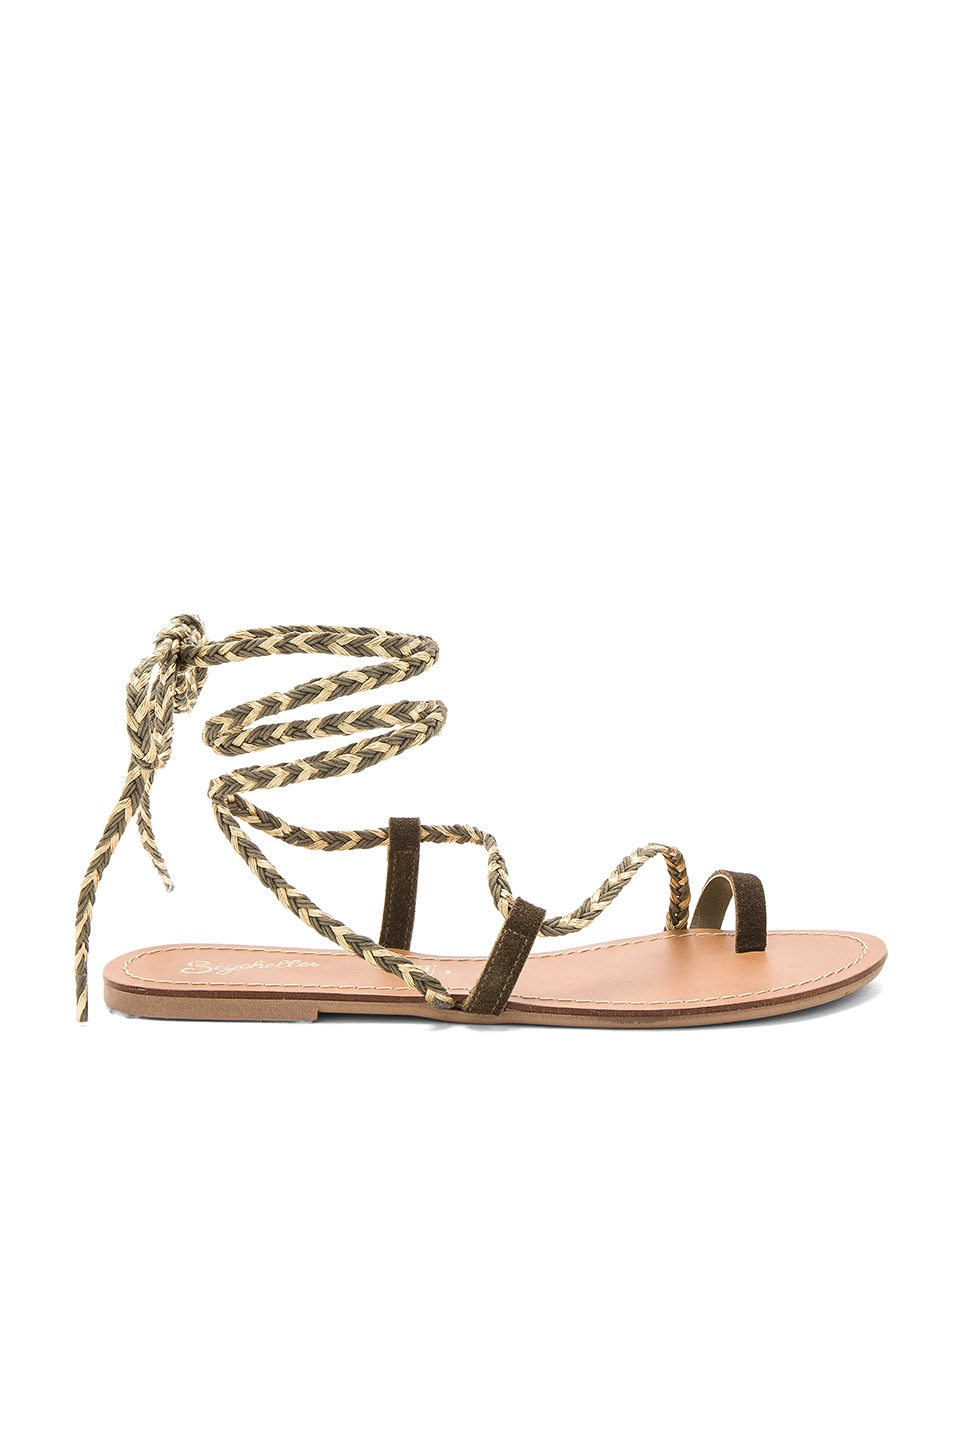 Glory Sandals by Seychelles